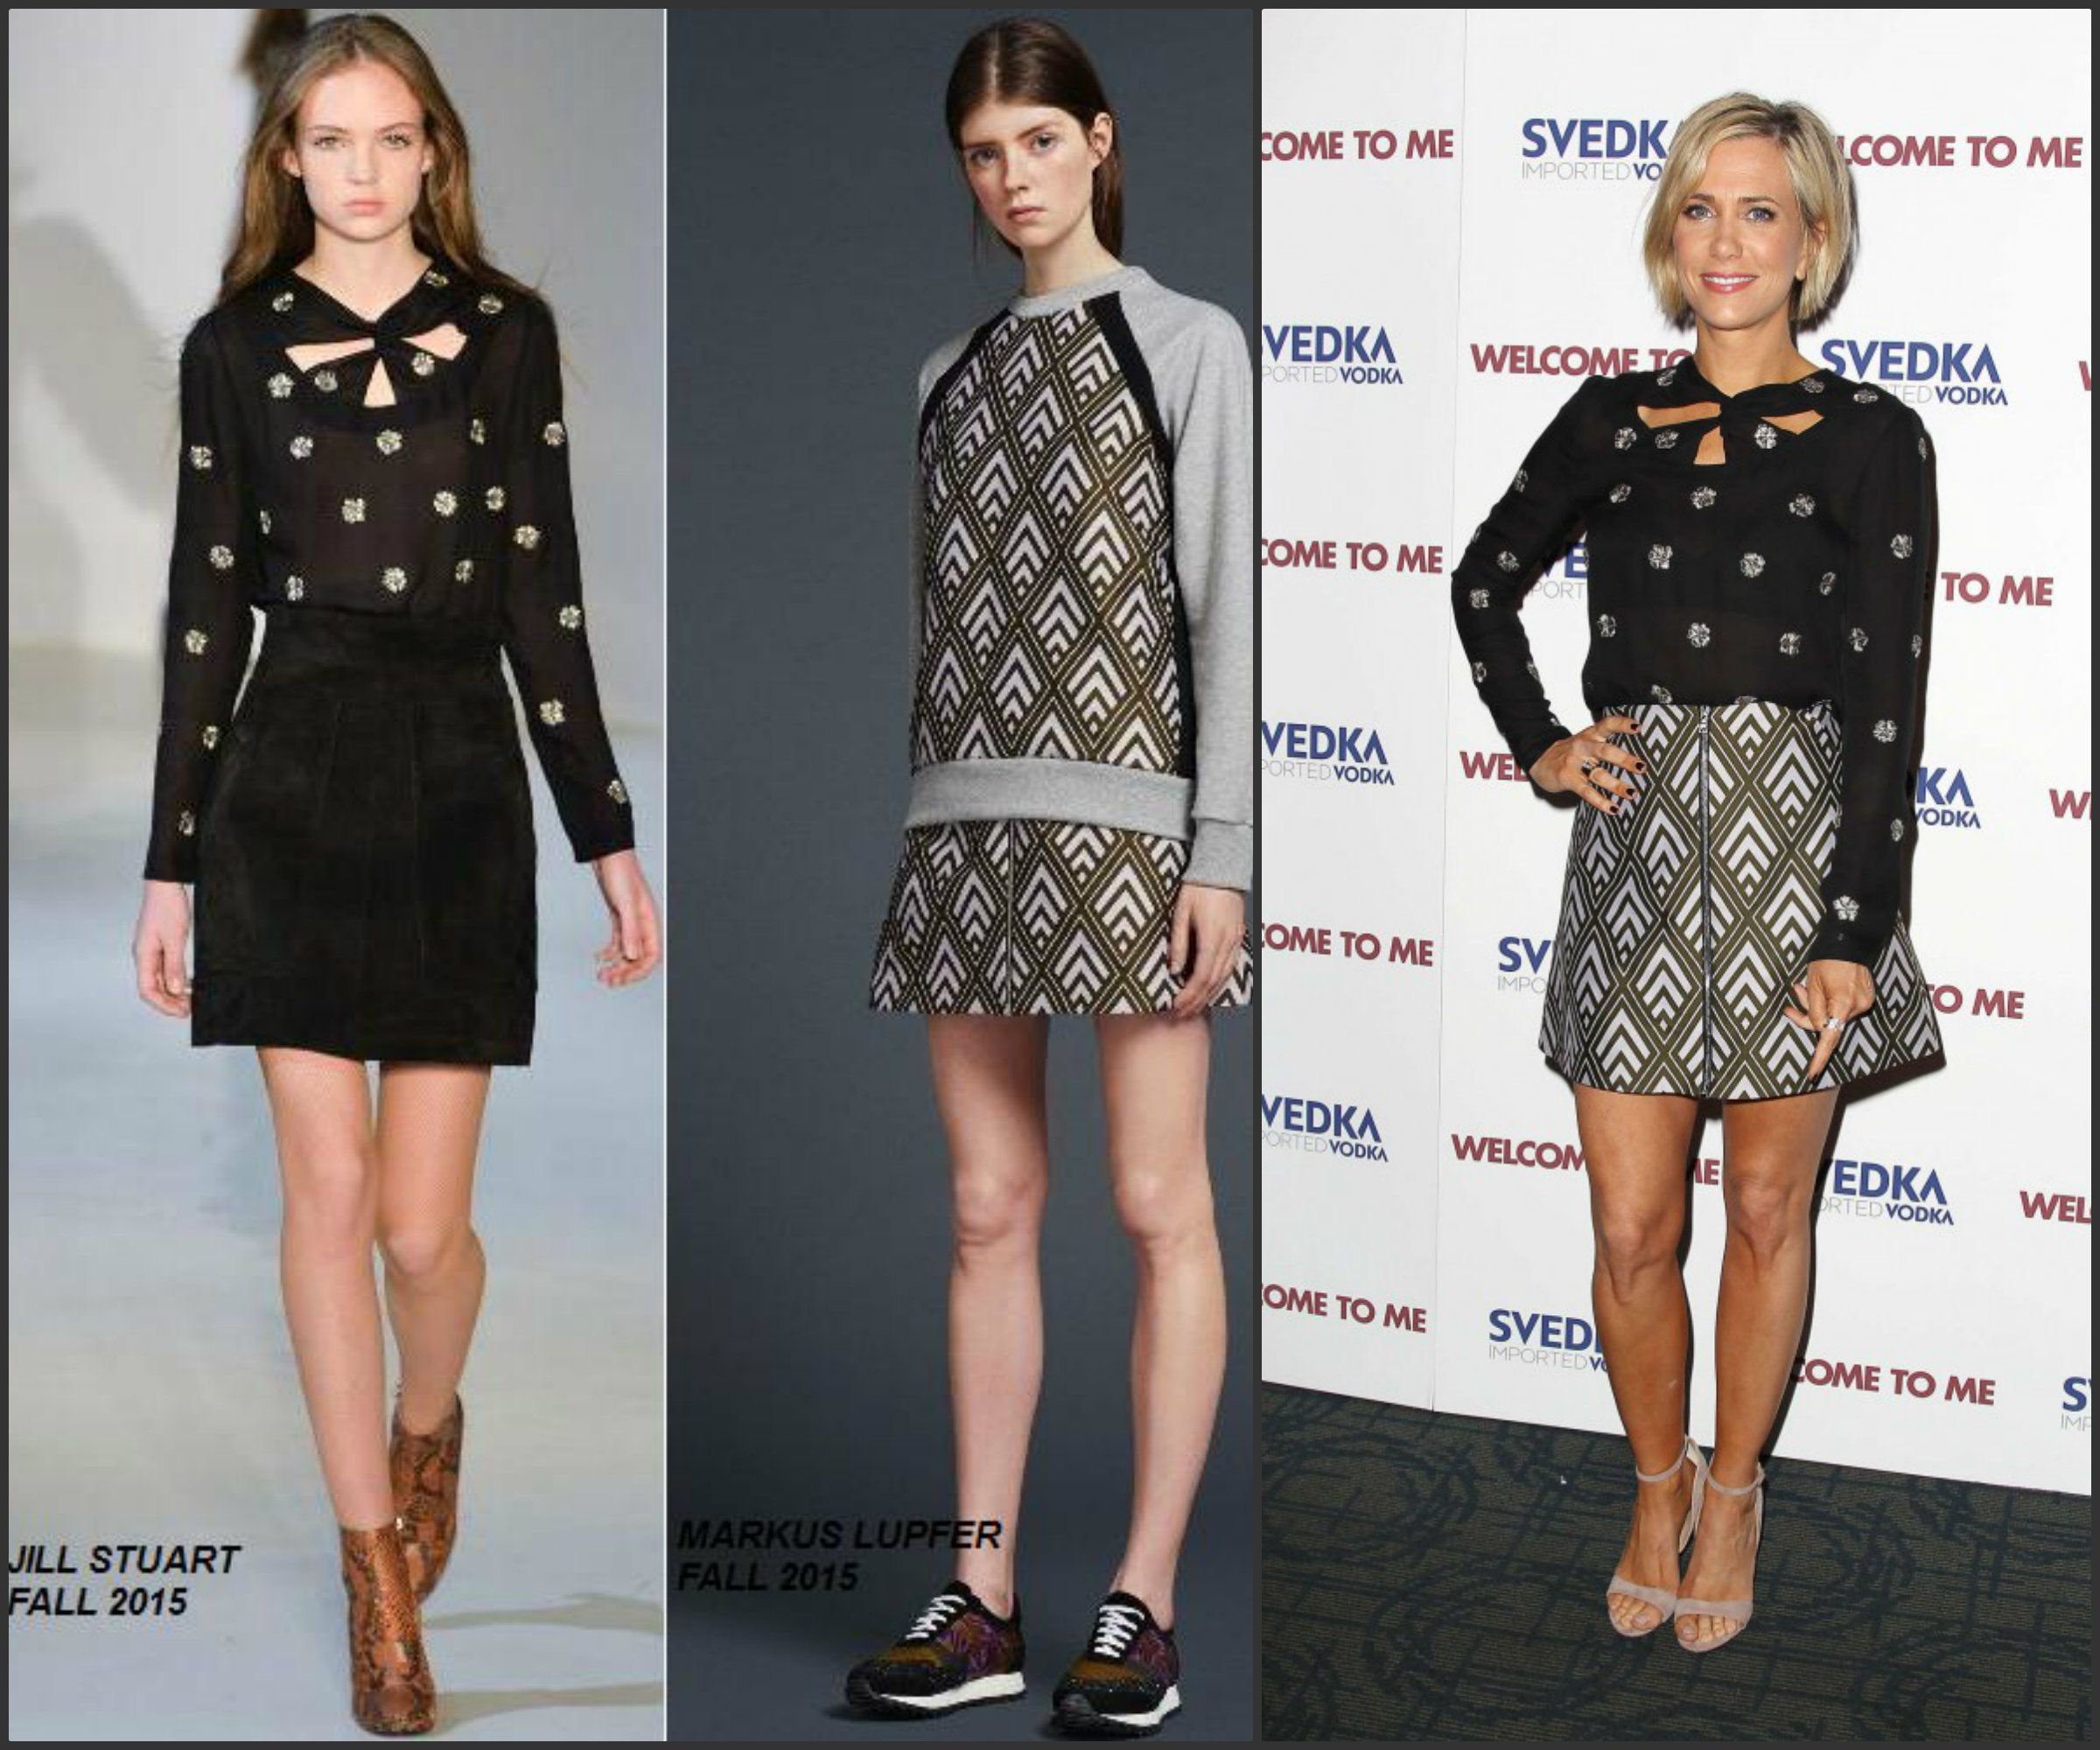 kristen-wiig-in-jill-stuart-and-markus-lupfer-at-the-welcome-to-me-NY-premiere